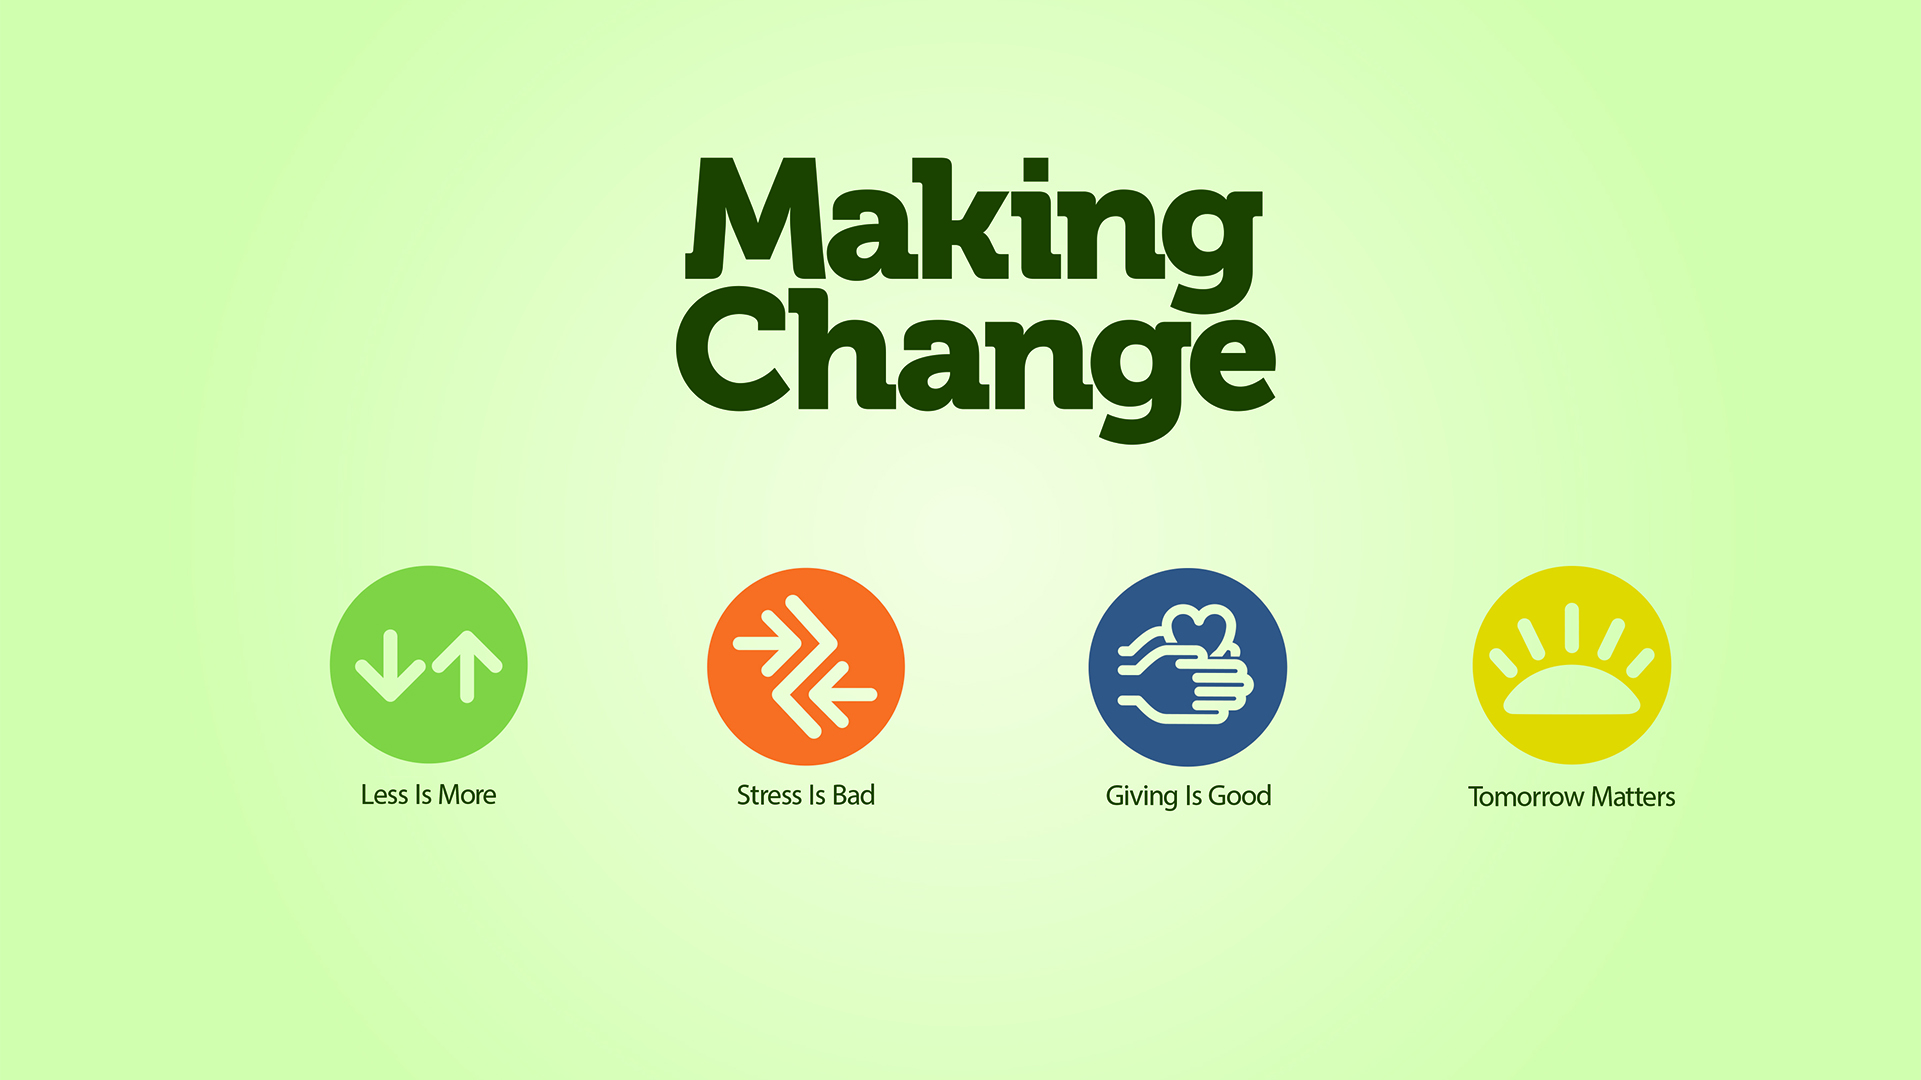 Making Change pt 1: Less is More